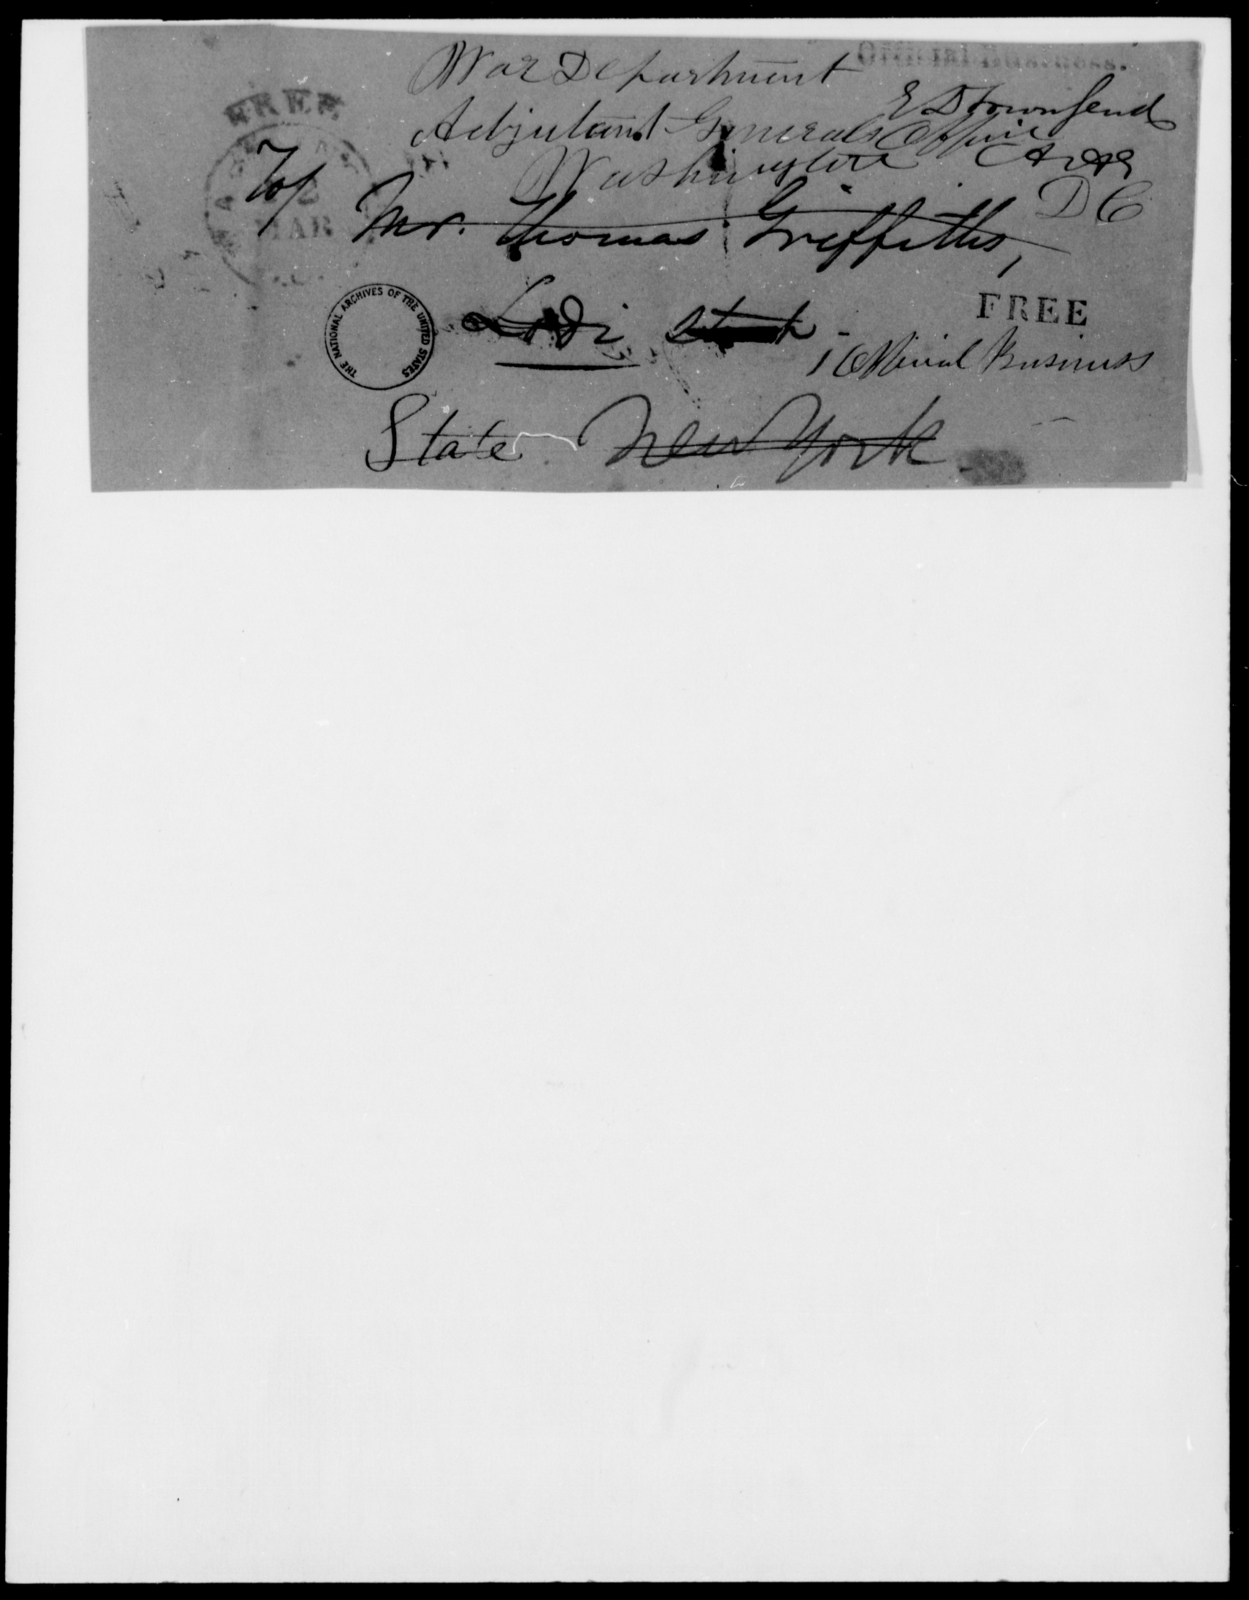 Griffith, Thomas - State: District of Columbia - Year: 1848 - File Number: G399